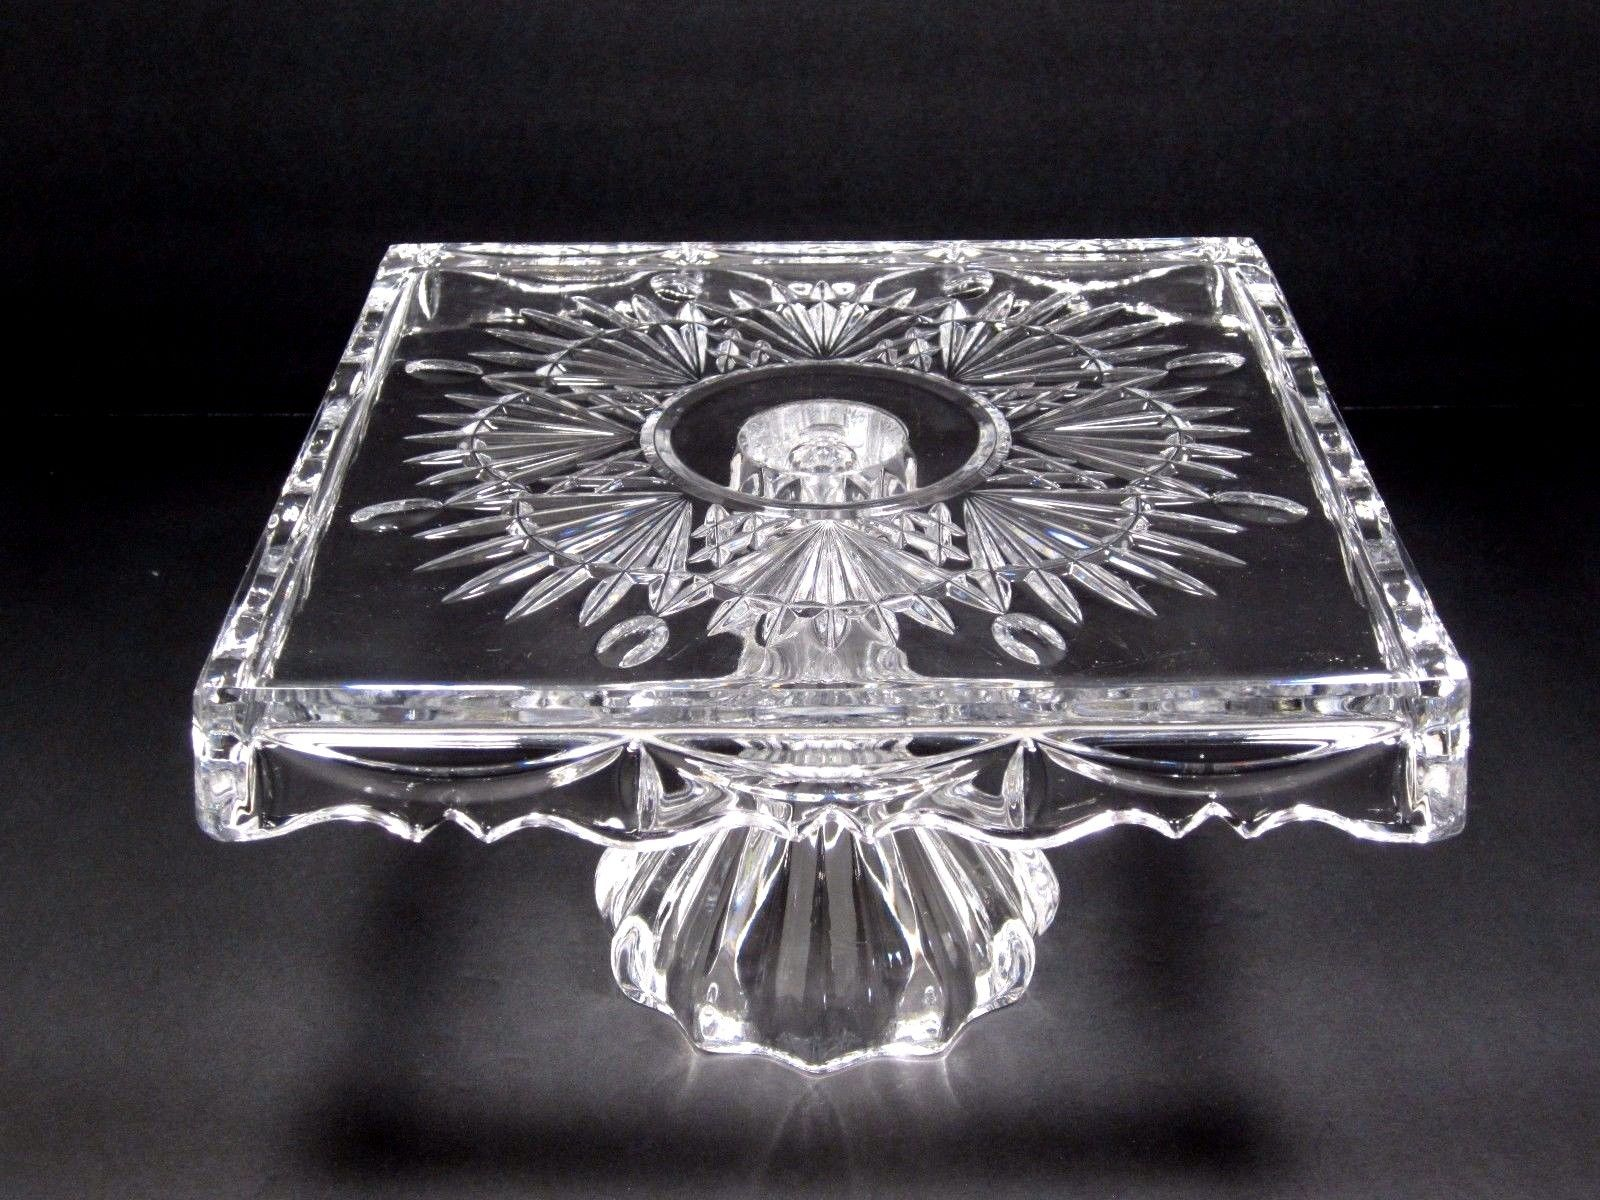 Beautiful shannon crystal by godinger for kitchen and dining sets with shannon crystal by godinger dublin